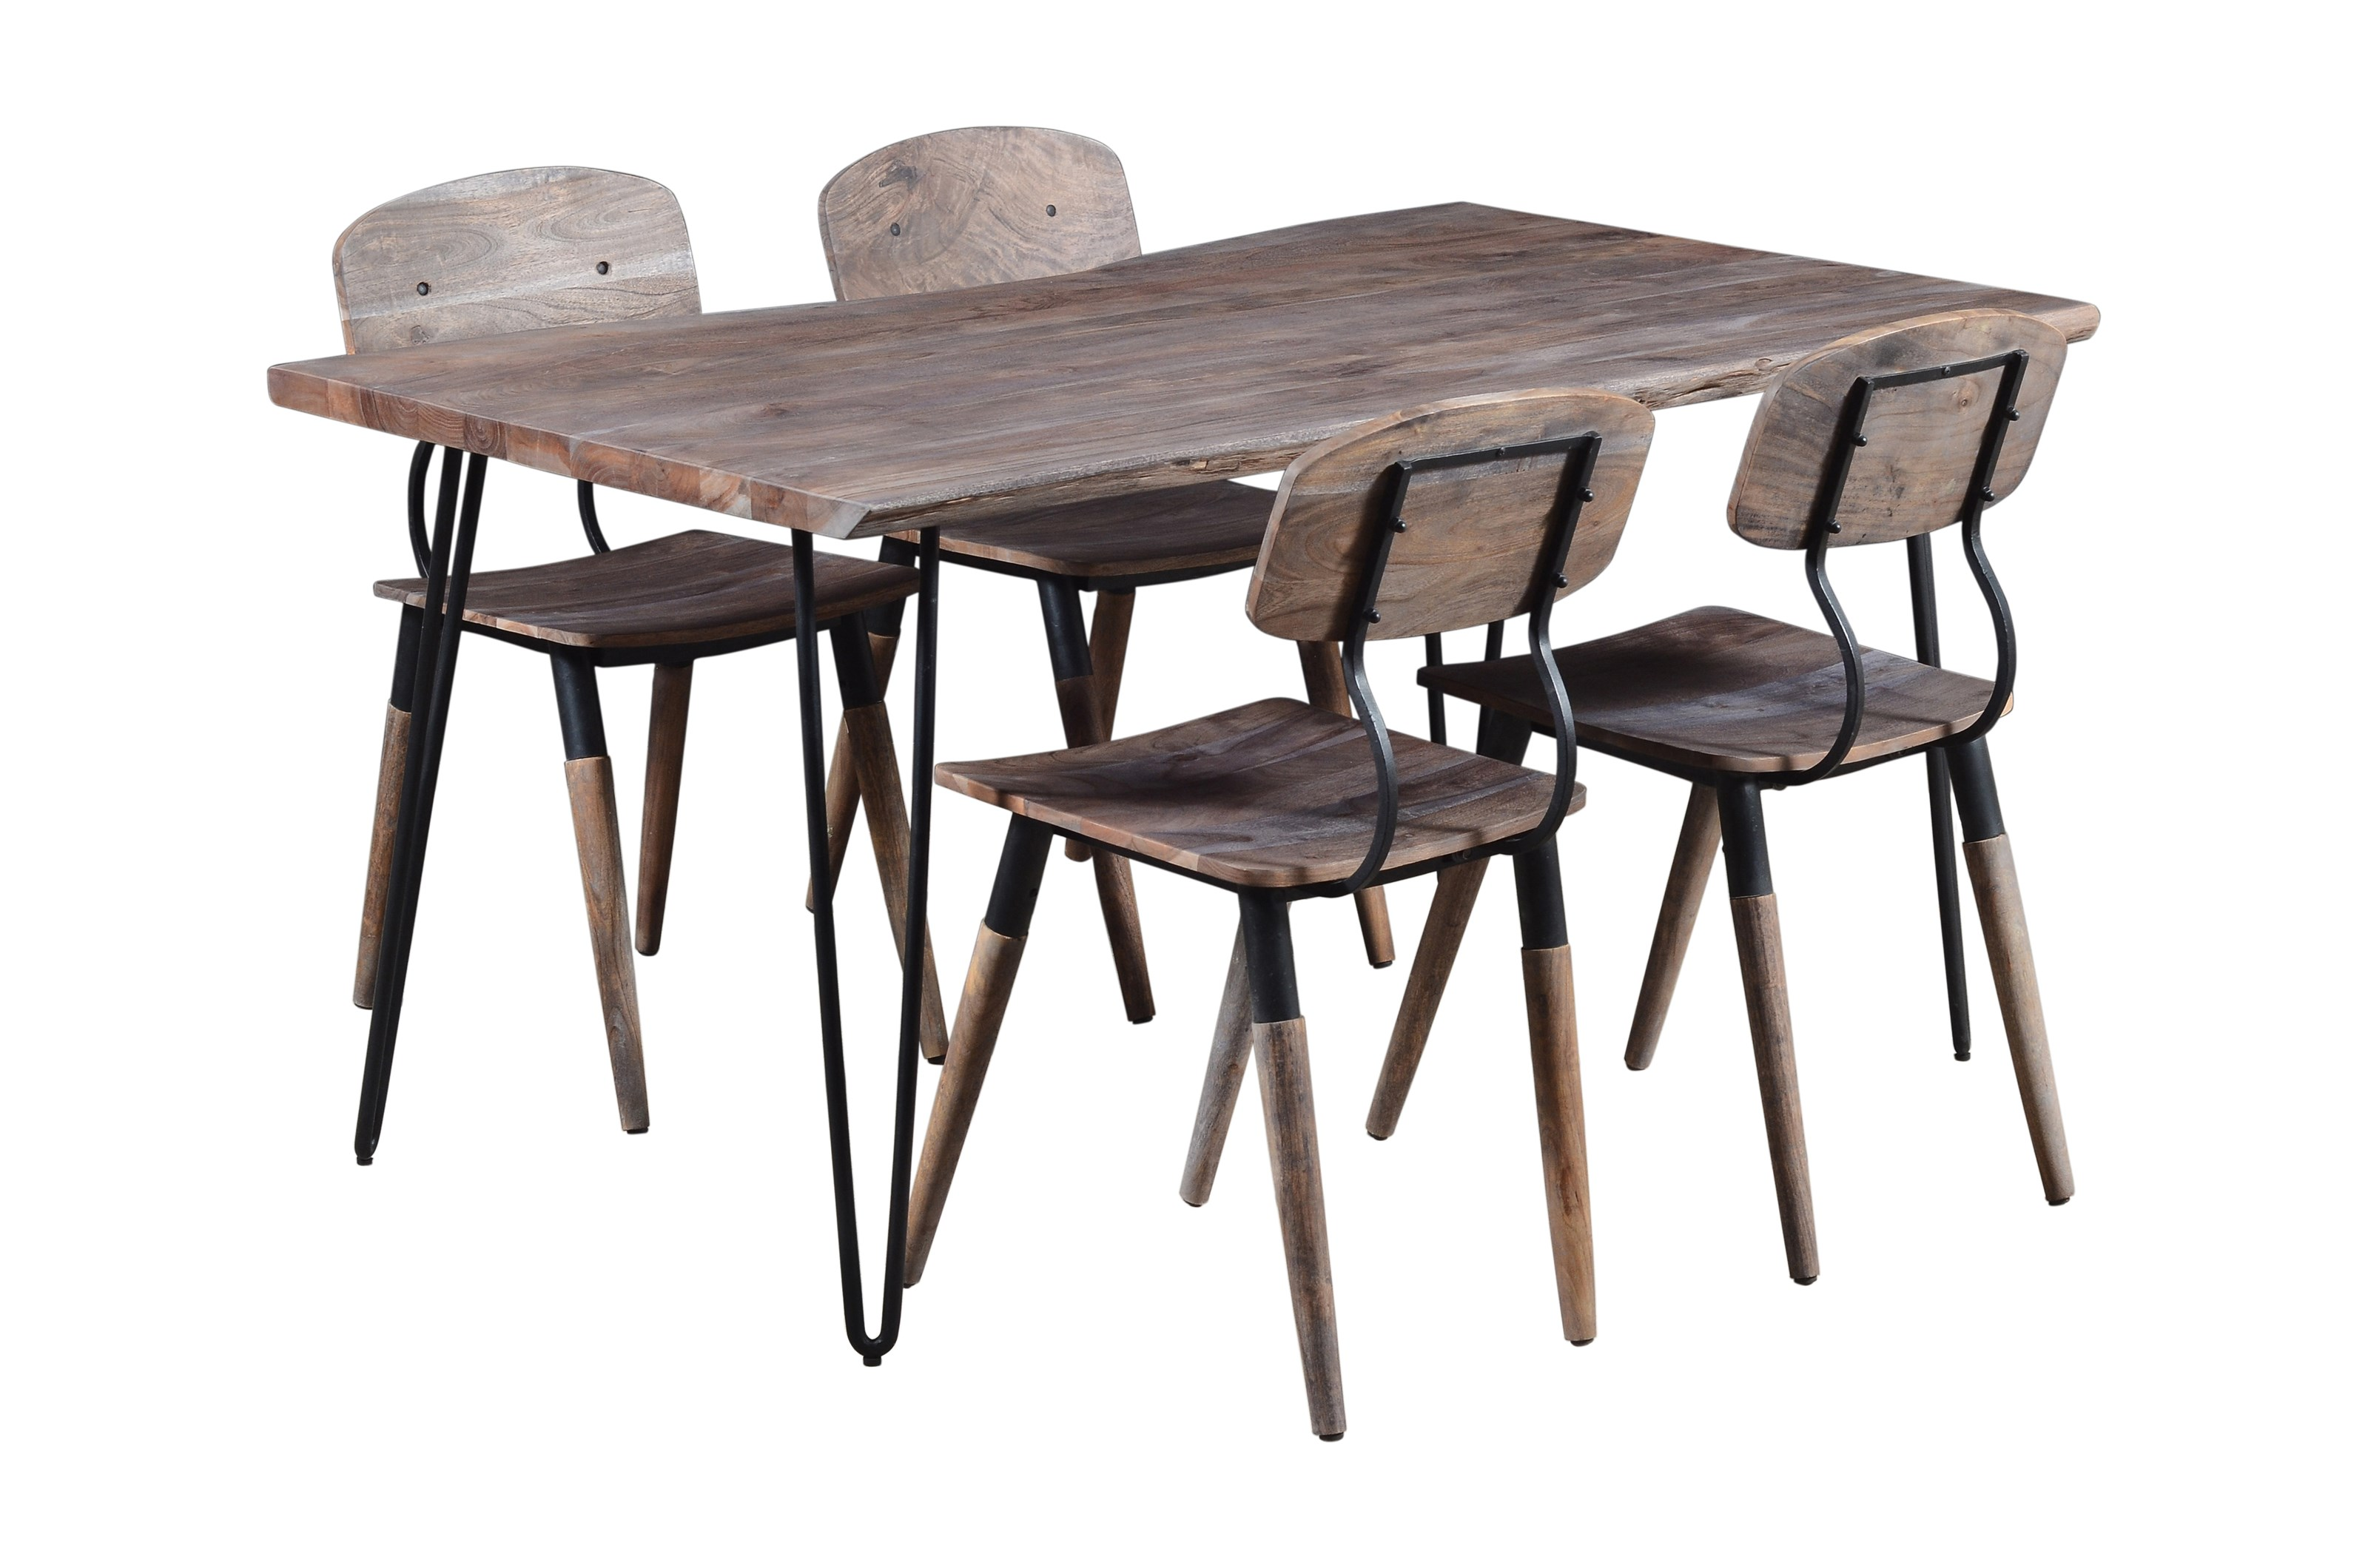 """Nature's Edge 60"""" Dining Table with 4 Chairs by Jofran at Jofran"""